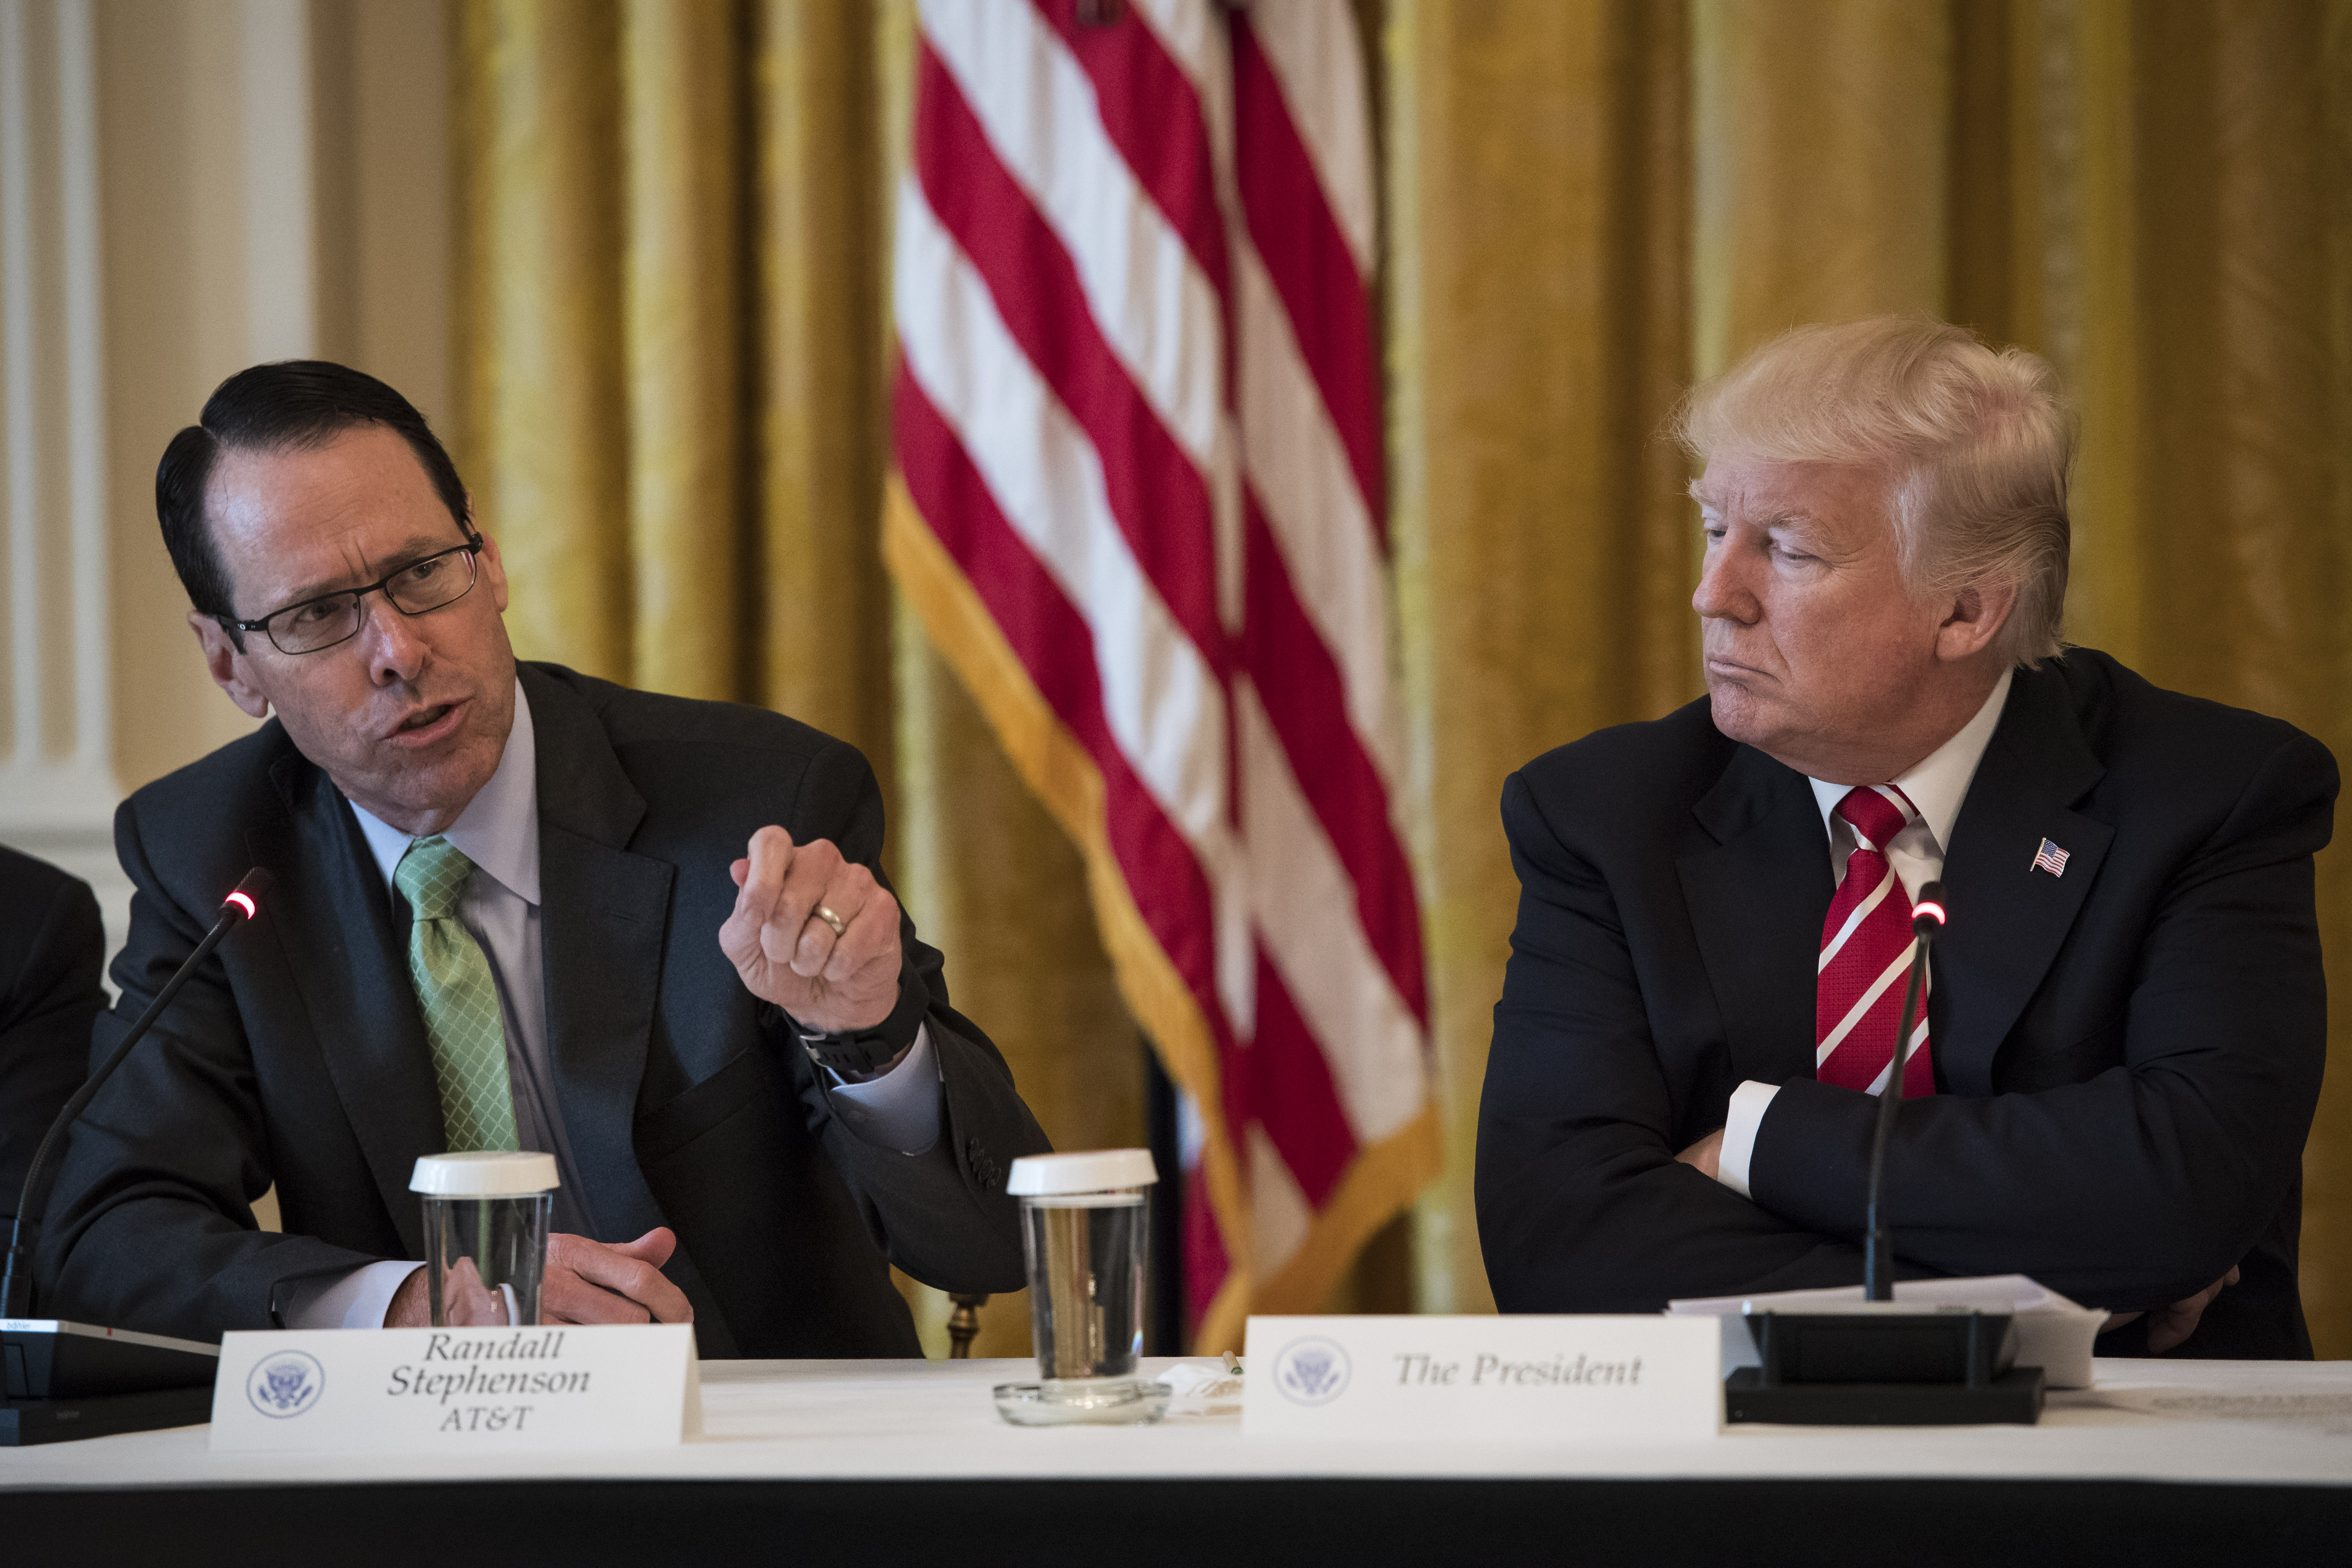 AT&T CEO Randall Stephenson sits and speaks at a conference table while President Donald Trump sits with arms folded and listens.